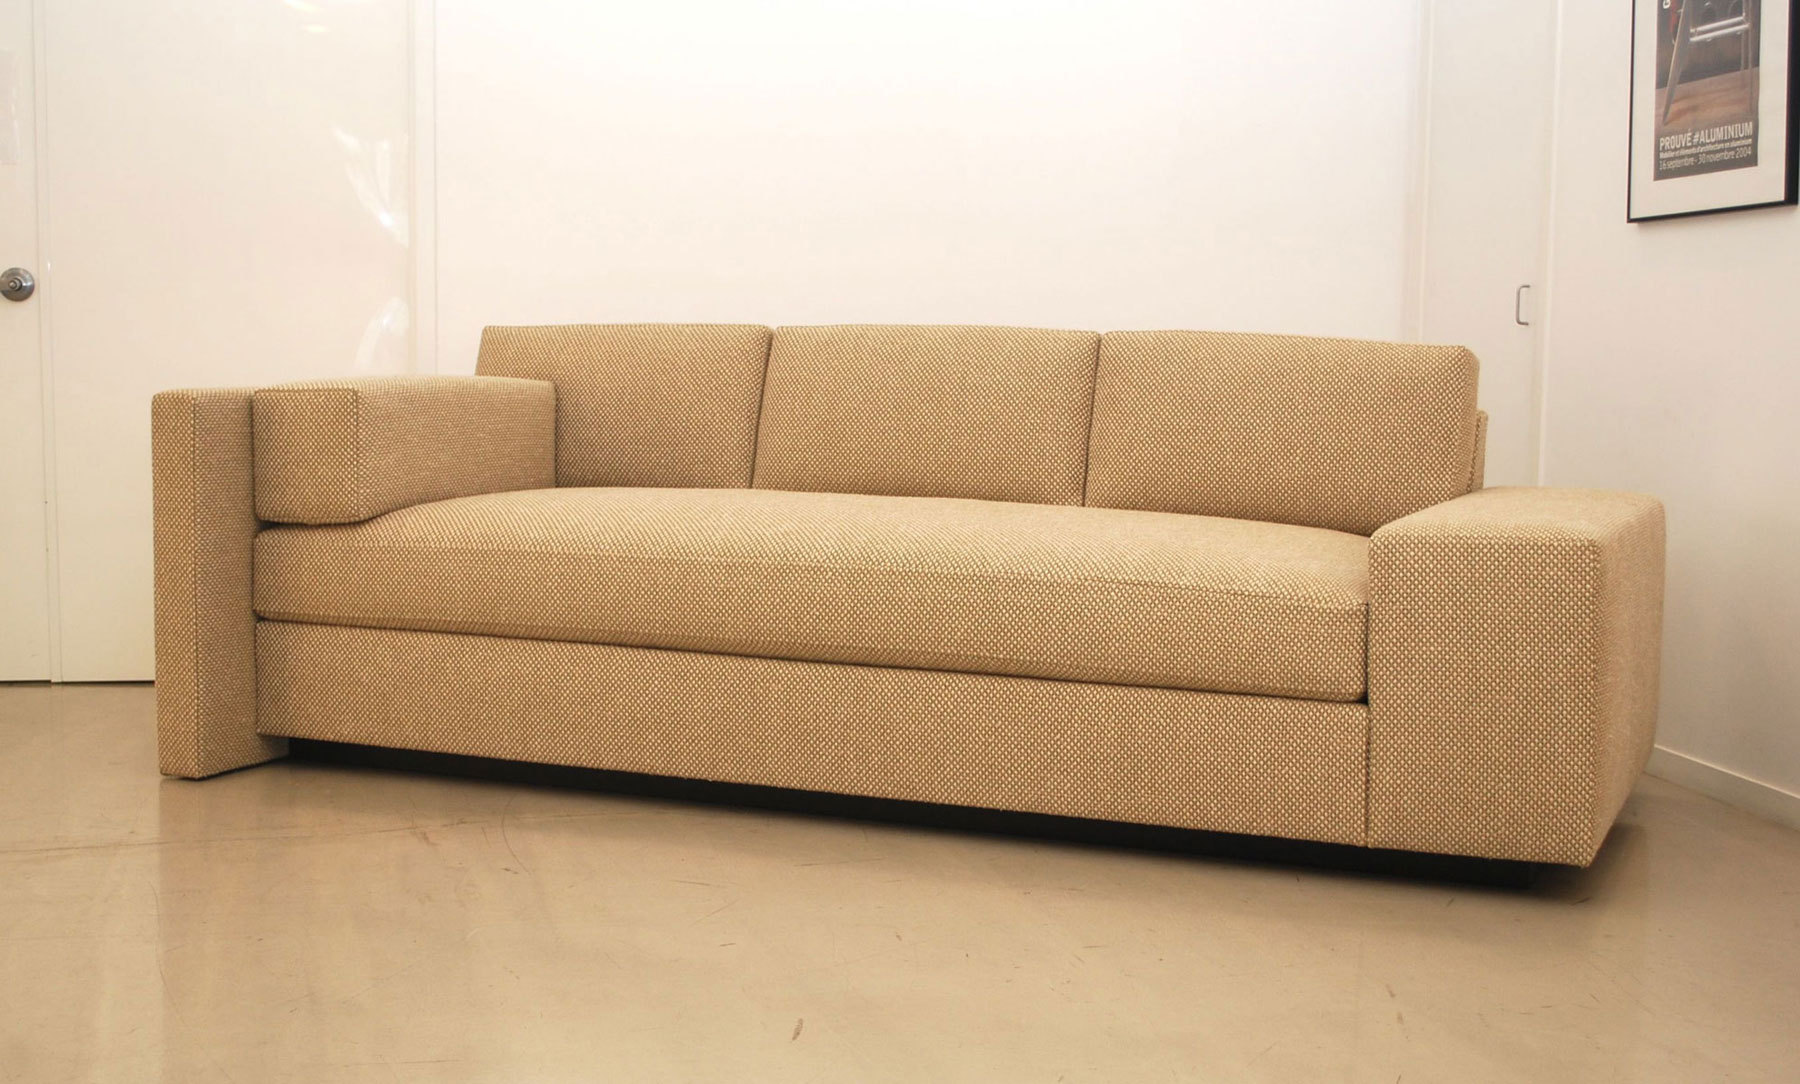 Custom design sofas thesofa for Cheap designer couches